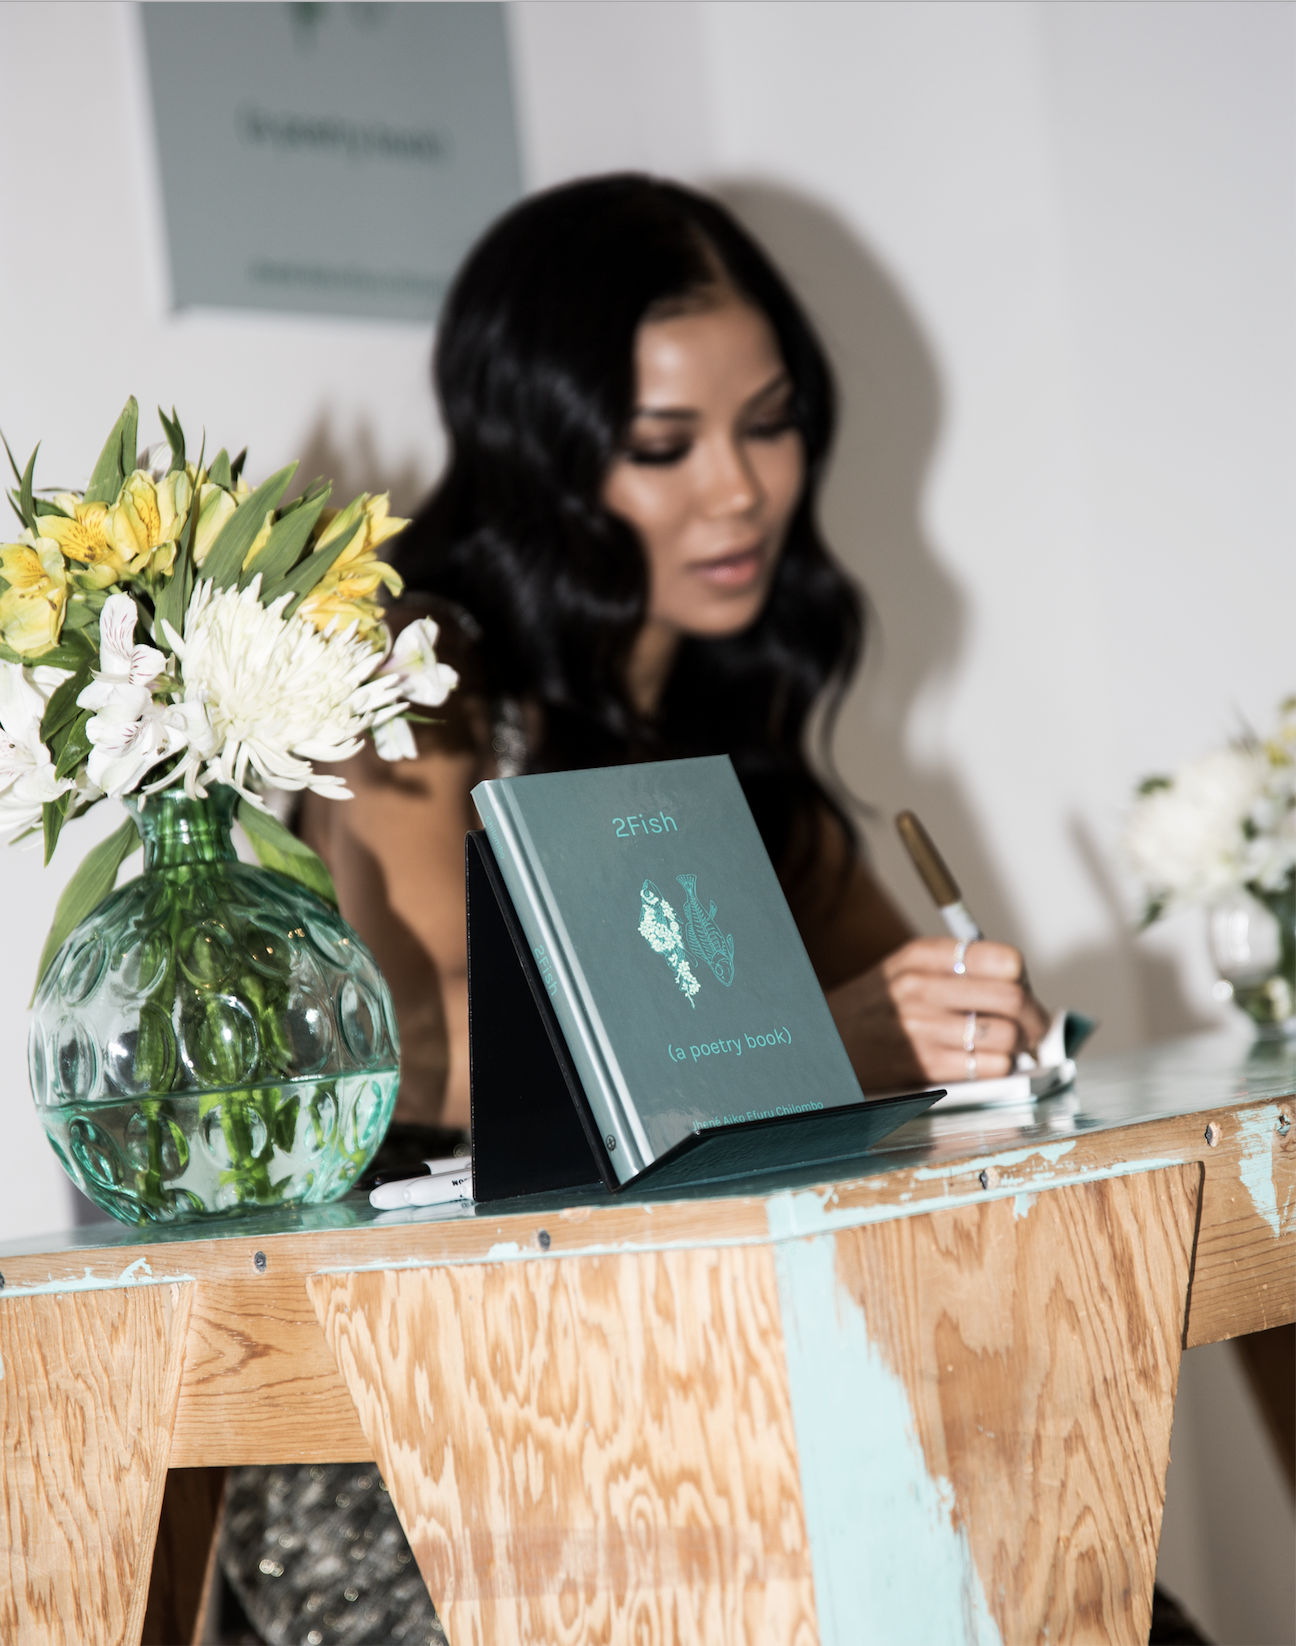 Jhene Aiko, at her  2Fish  book-signing | All photos by Jai Sabree